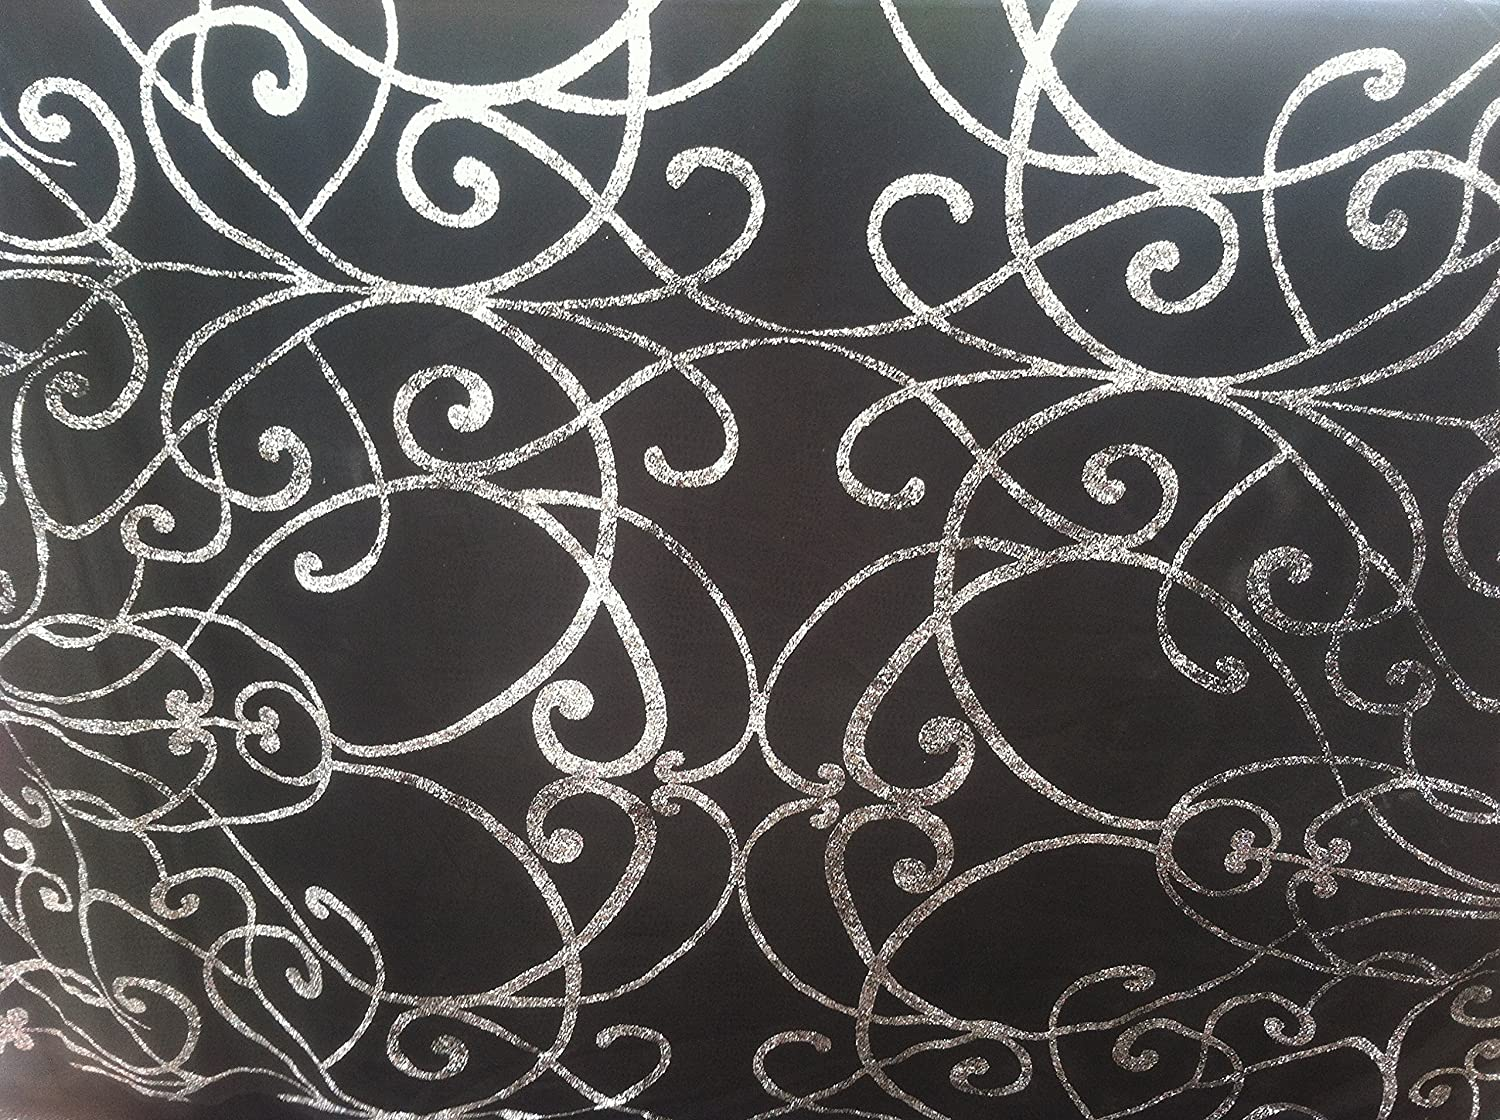 Fancy Sequence Fabric 2.40 Black Yards 39 Width Crafts Clothing Bridal